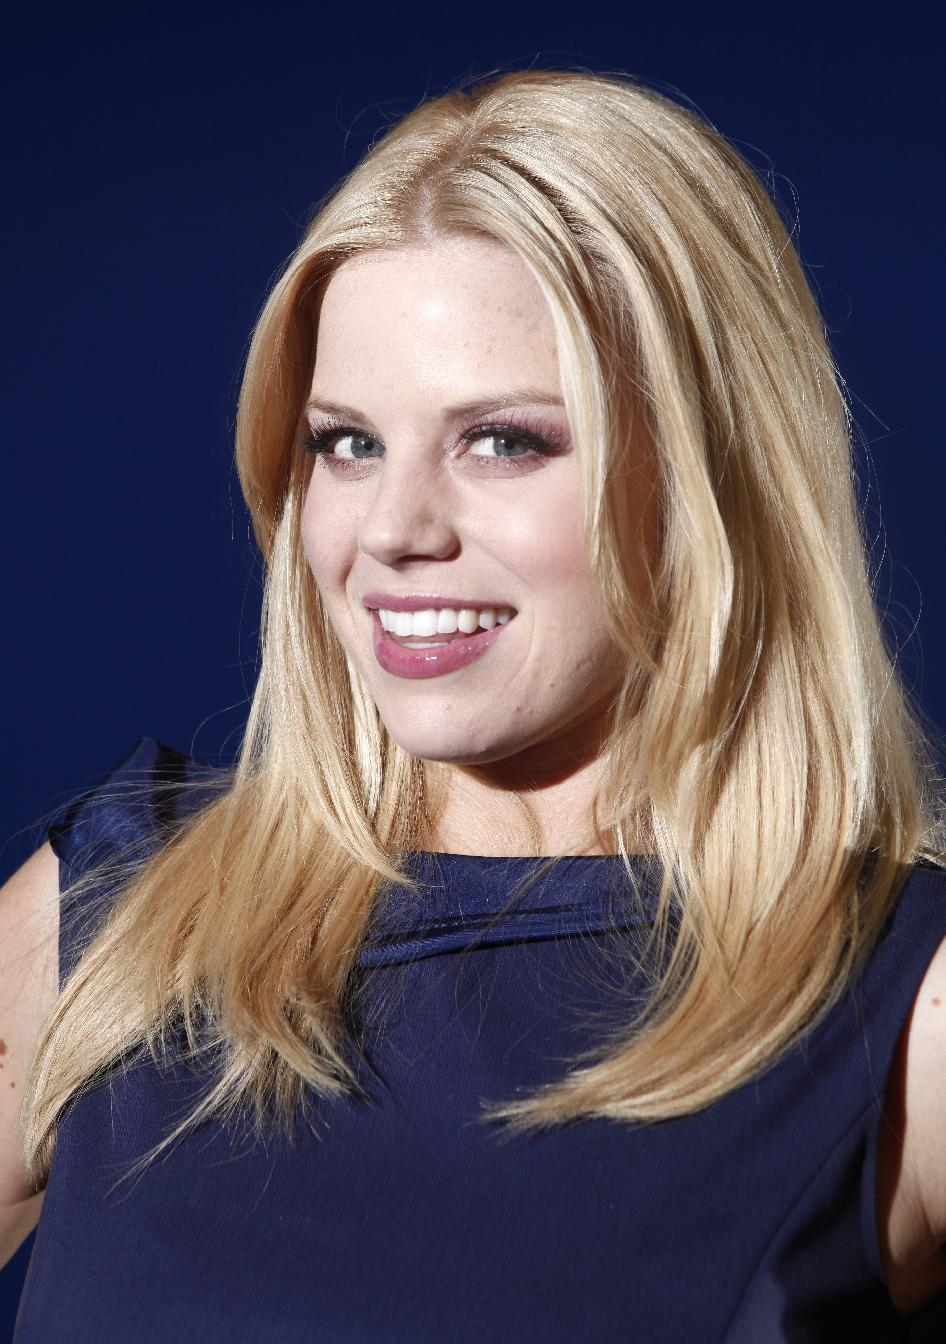 File- In this Feb. 27, 2012 file photo, actress Megan Hilty poses for a portrait in New York. Hilty wrapped her second, and possibly final, season of ...